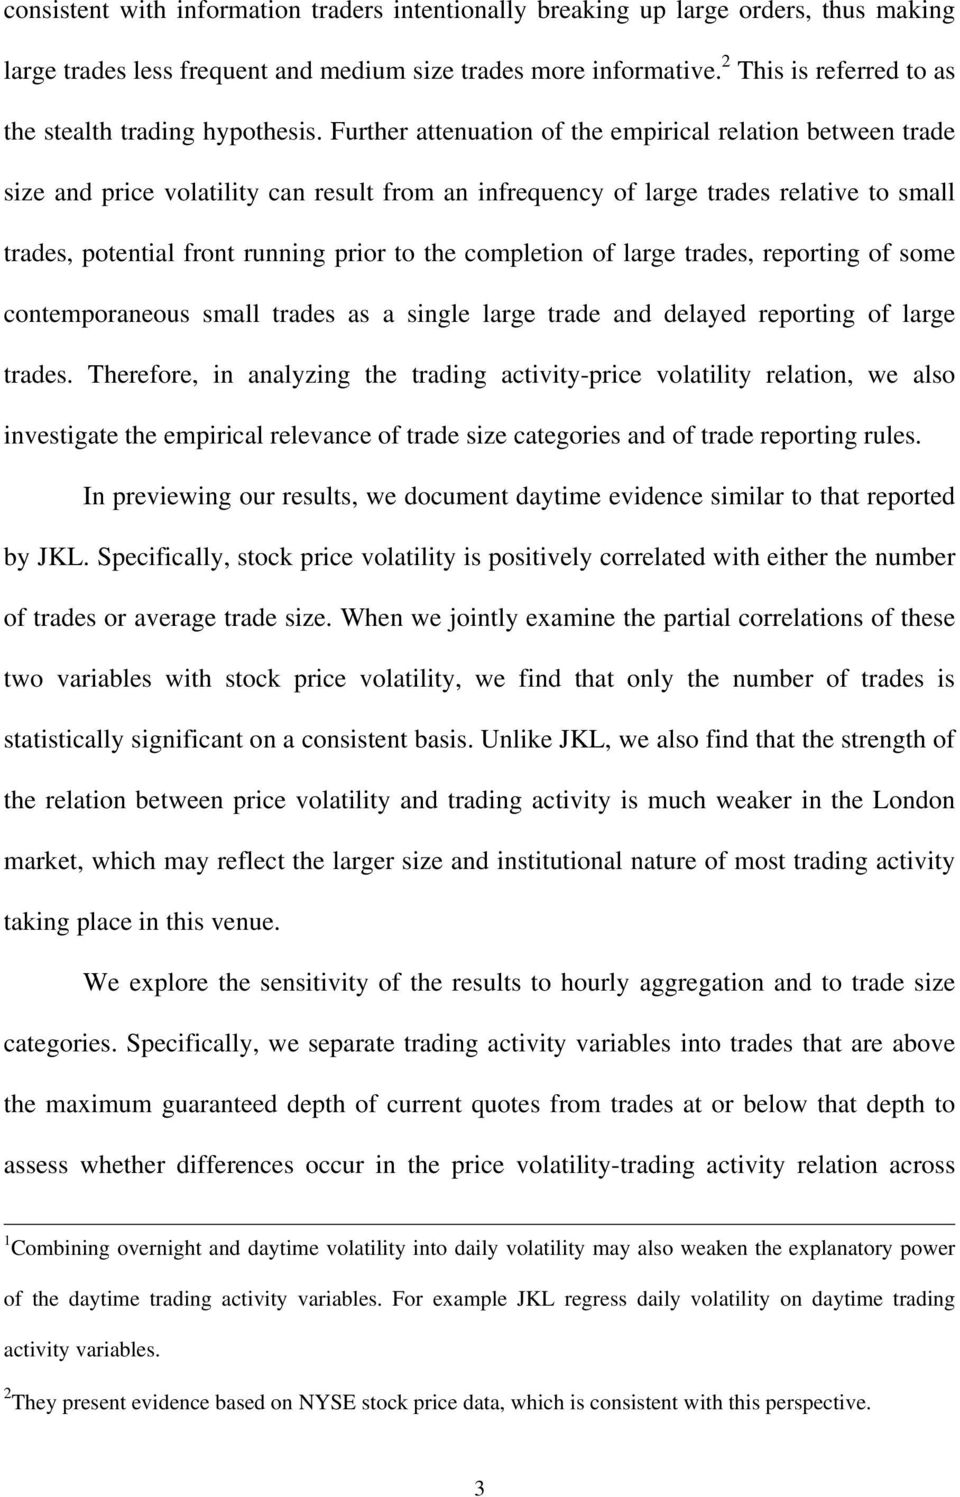 Further attenuation of the empirical relation between trade size and price volatility can result from an infrequency of large trades relative to small trades, potential front running prior to the